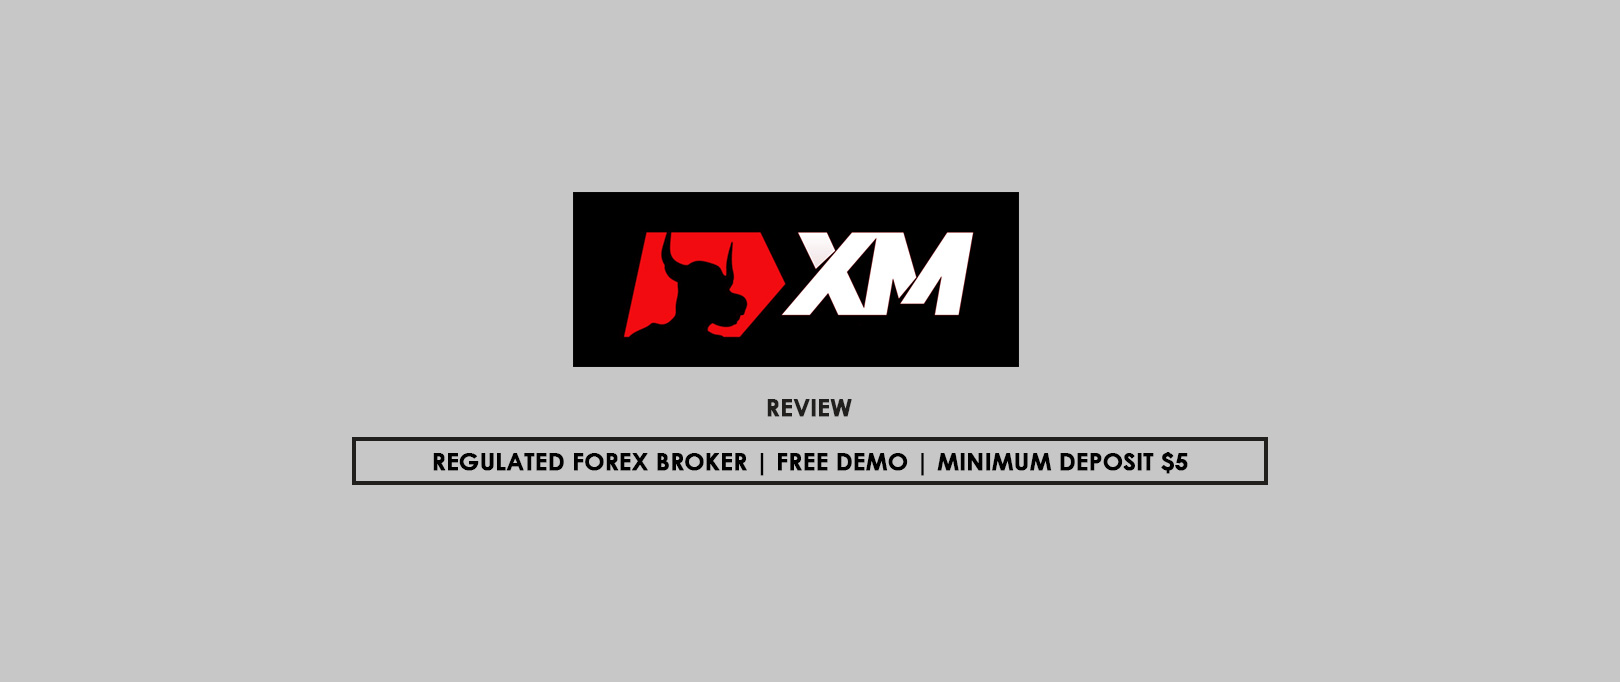 xm-forex-broker-review